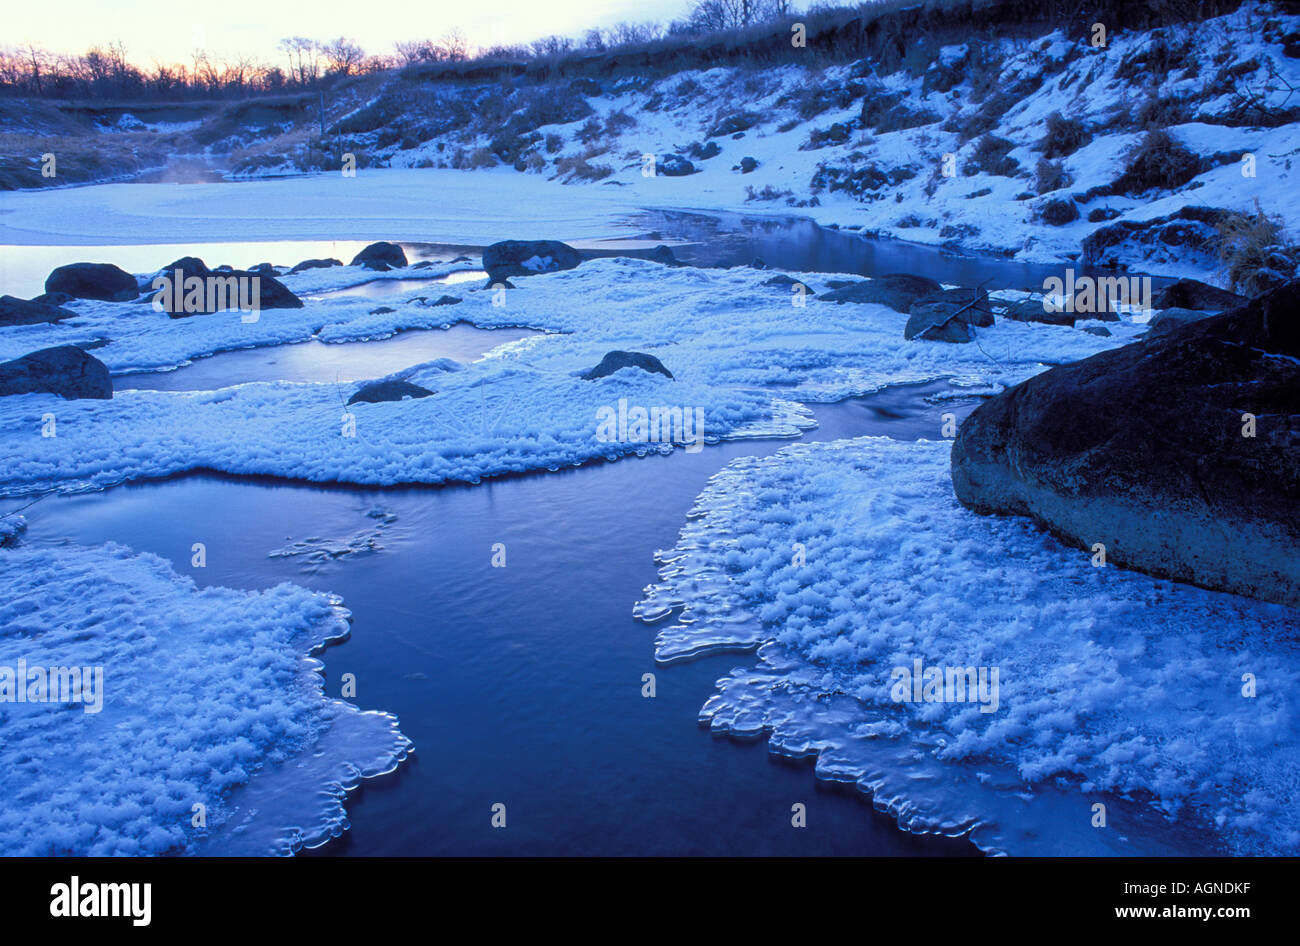 Ice along the Tounge River in Icelandic State Park North Dakota - Stock Image